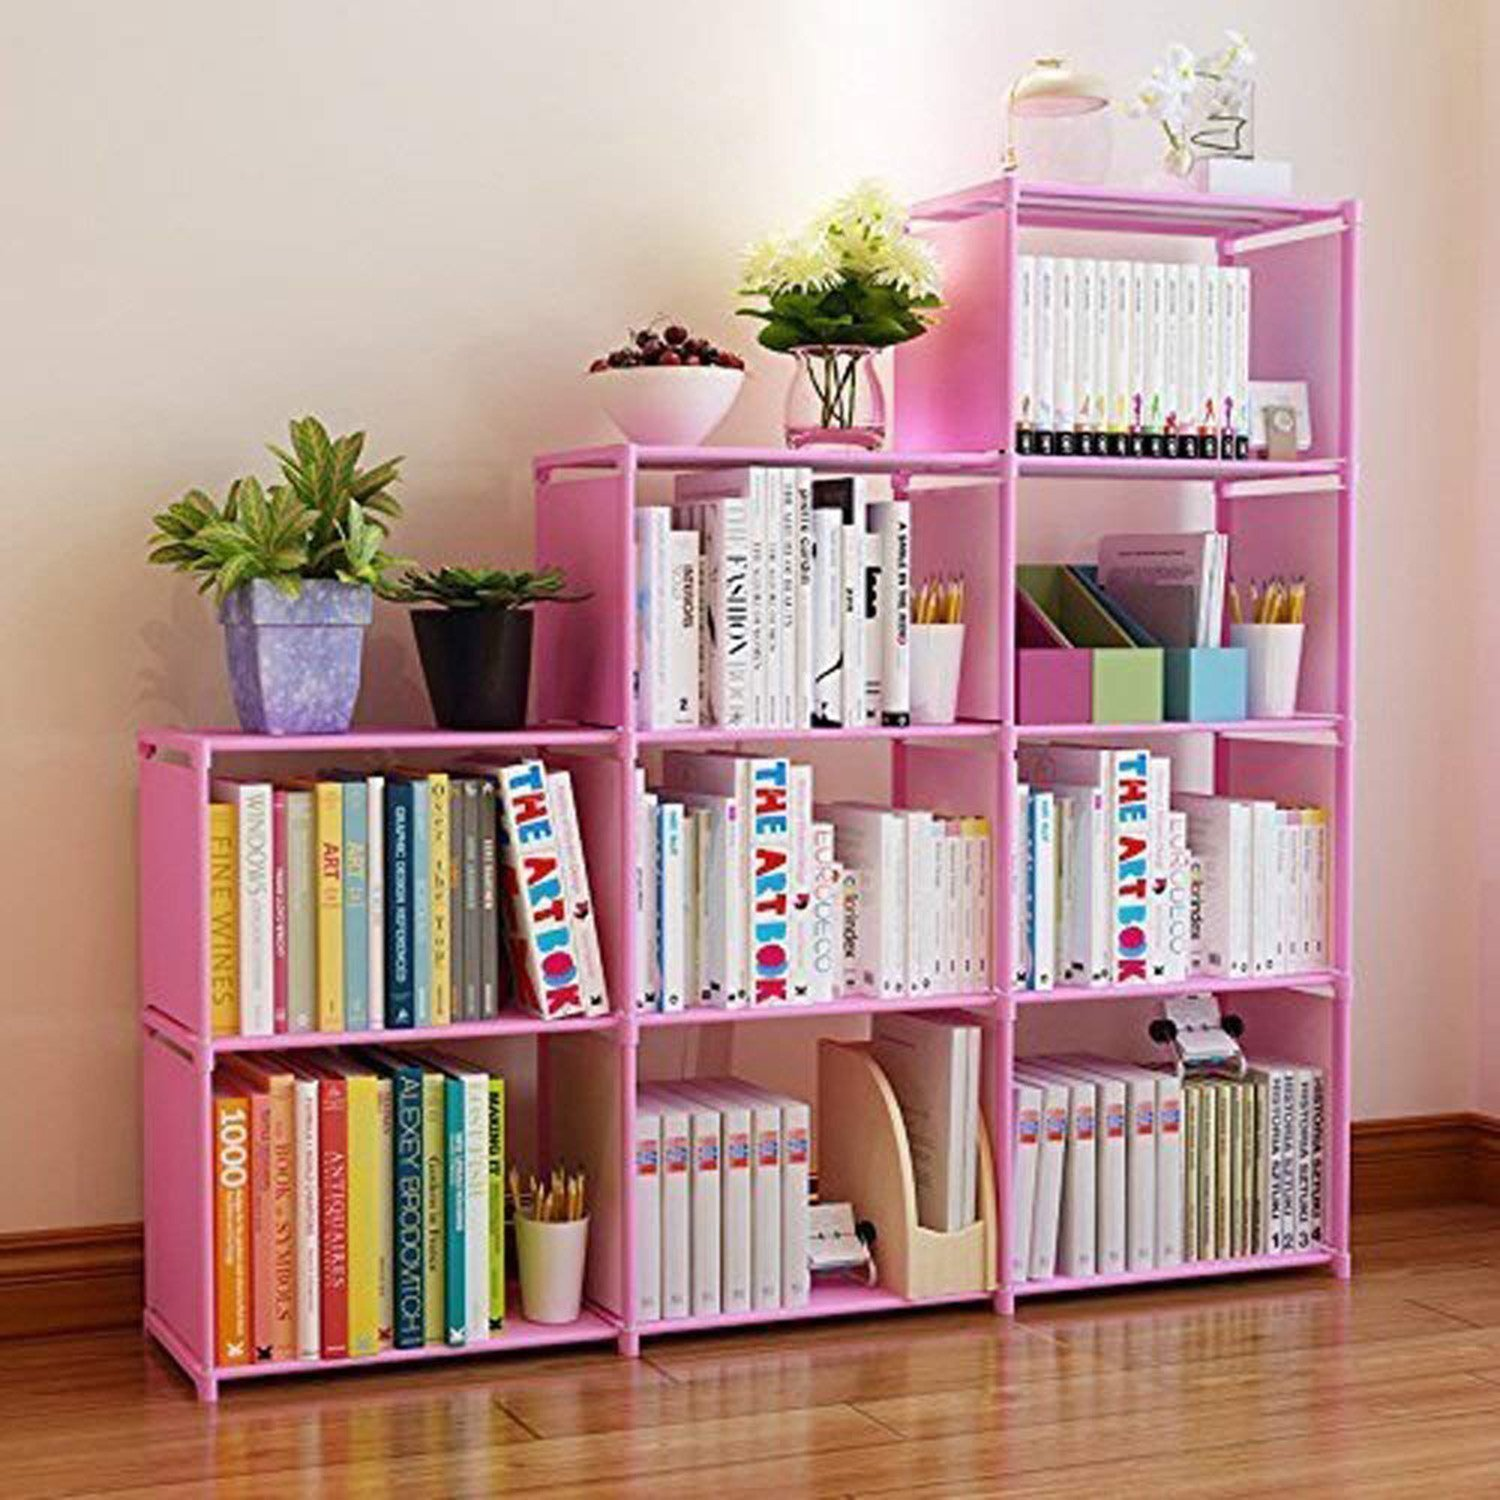 Aceshin 9 Cube Children's Bookcase Adjustable Bookshelf Organizer Closet DIY Cube Storage Shelves Unit (9 Cube, Pink)